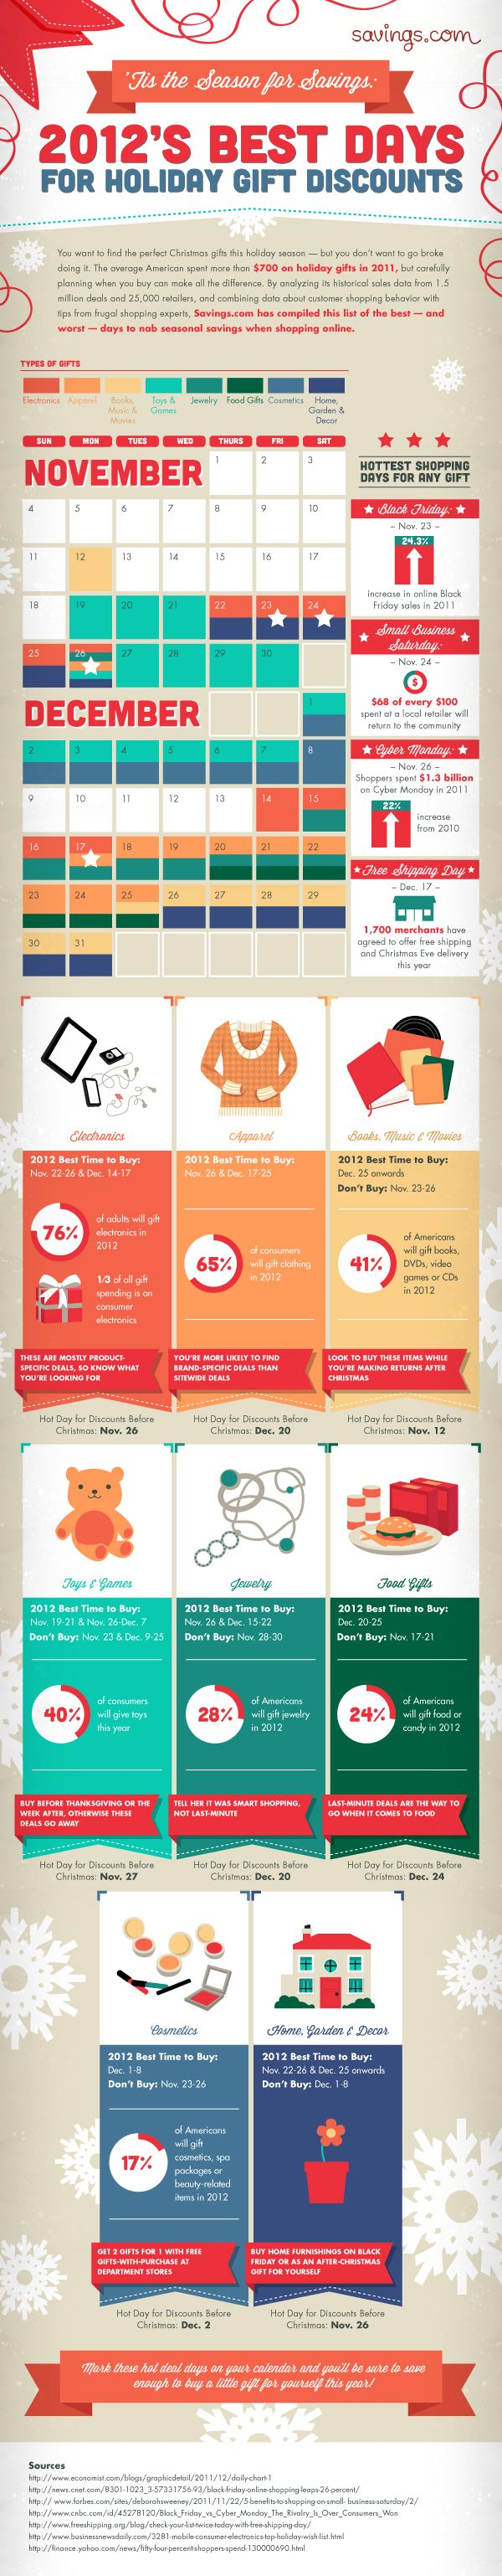 46 best coupons deals images on pinterest coupon coupons and best days for holiday gift discounts infographic fandeluxe Choice Image